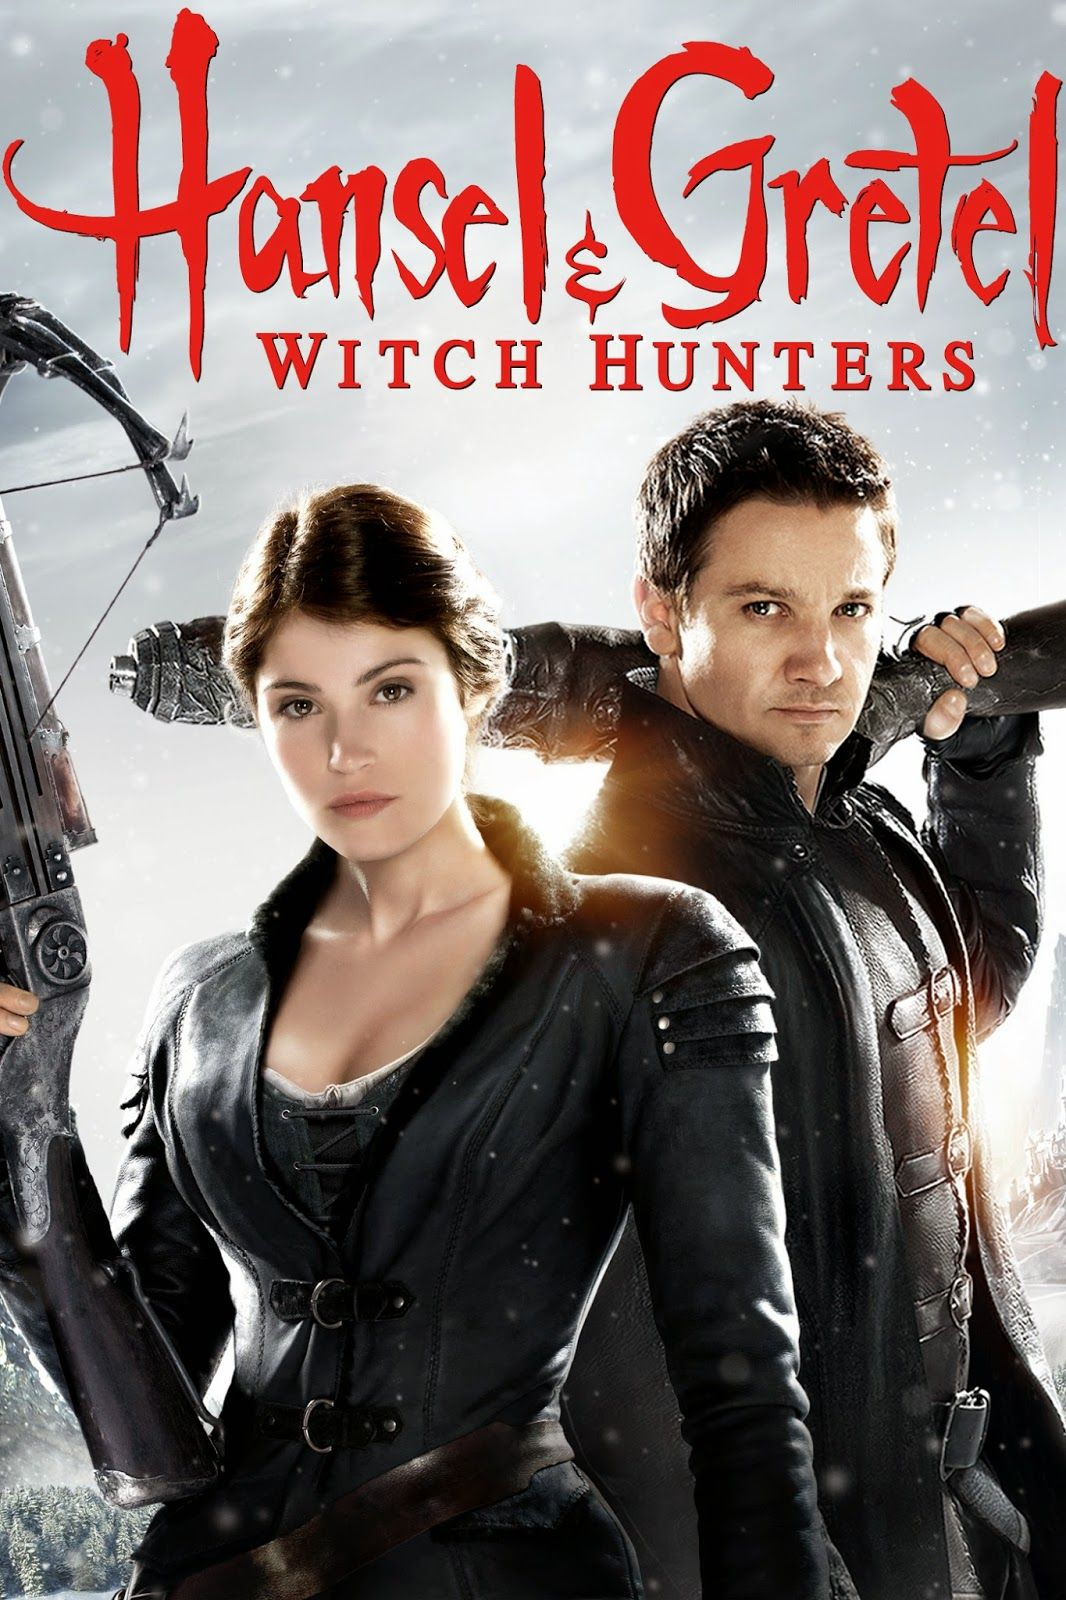 Watch Hansel Gretel Witch Hunters Online Free Putlocker Hansel Gretel Are Bounty Hunters Who Track And Kill Hunter Movie Jeremy Renner Movies And Tv Shows